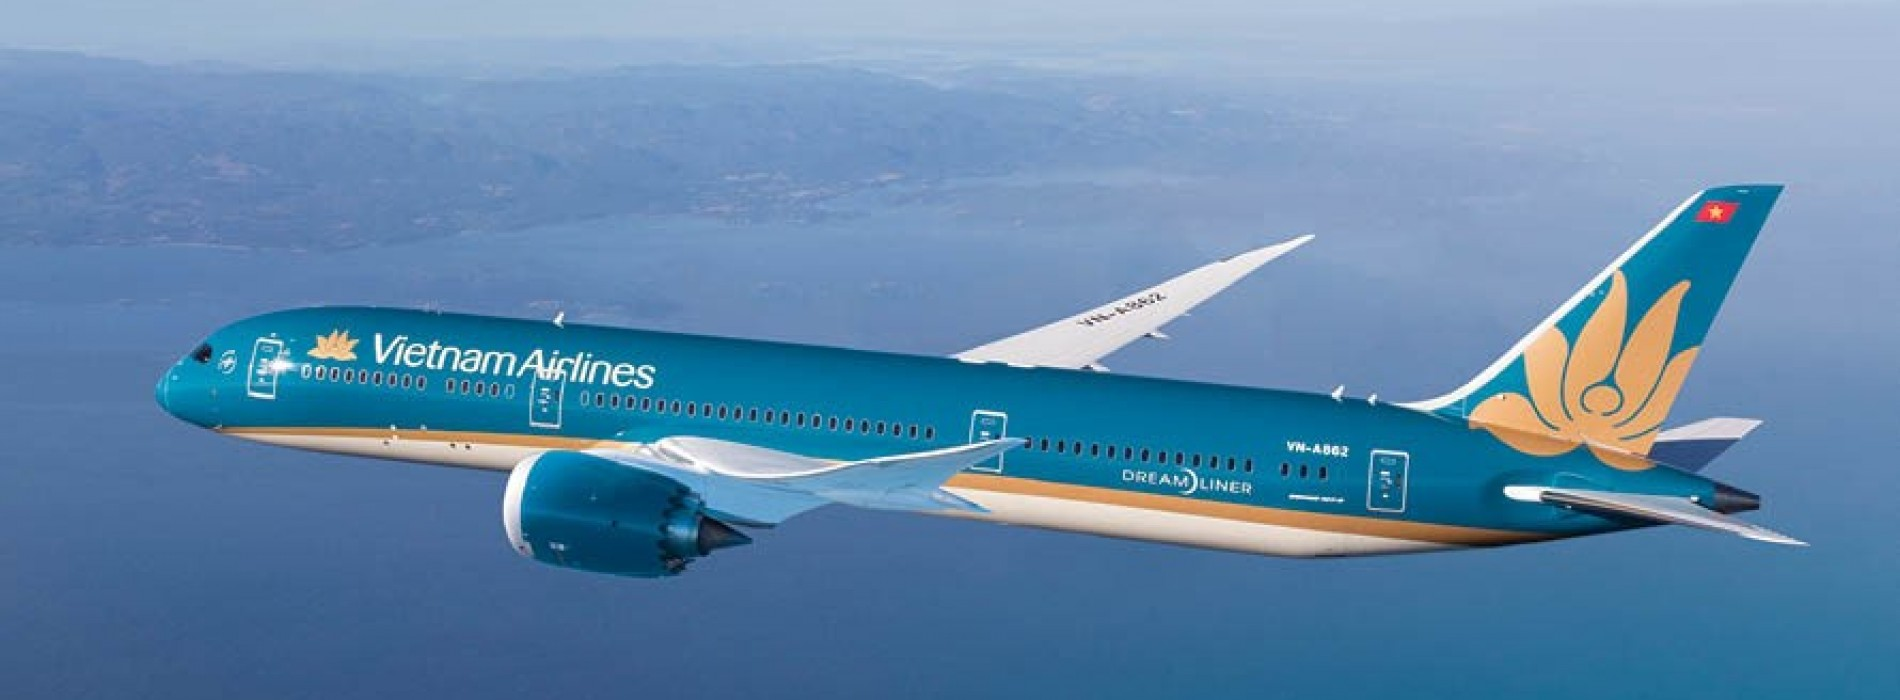 Vietnam Airlines renews distribution agreement with Sabre